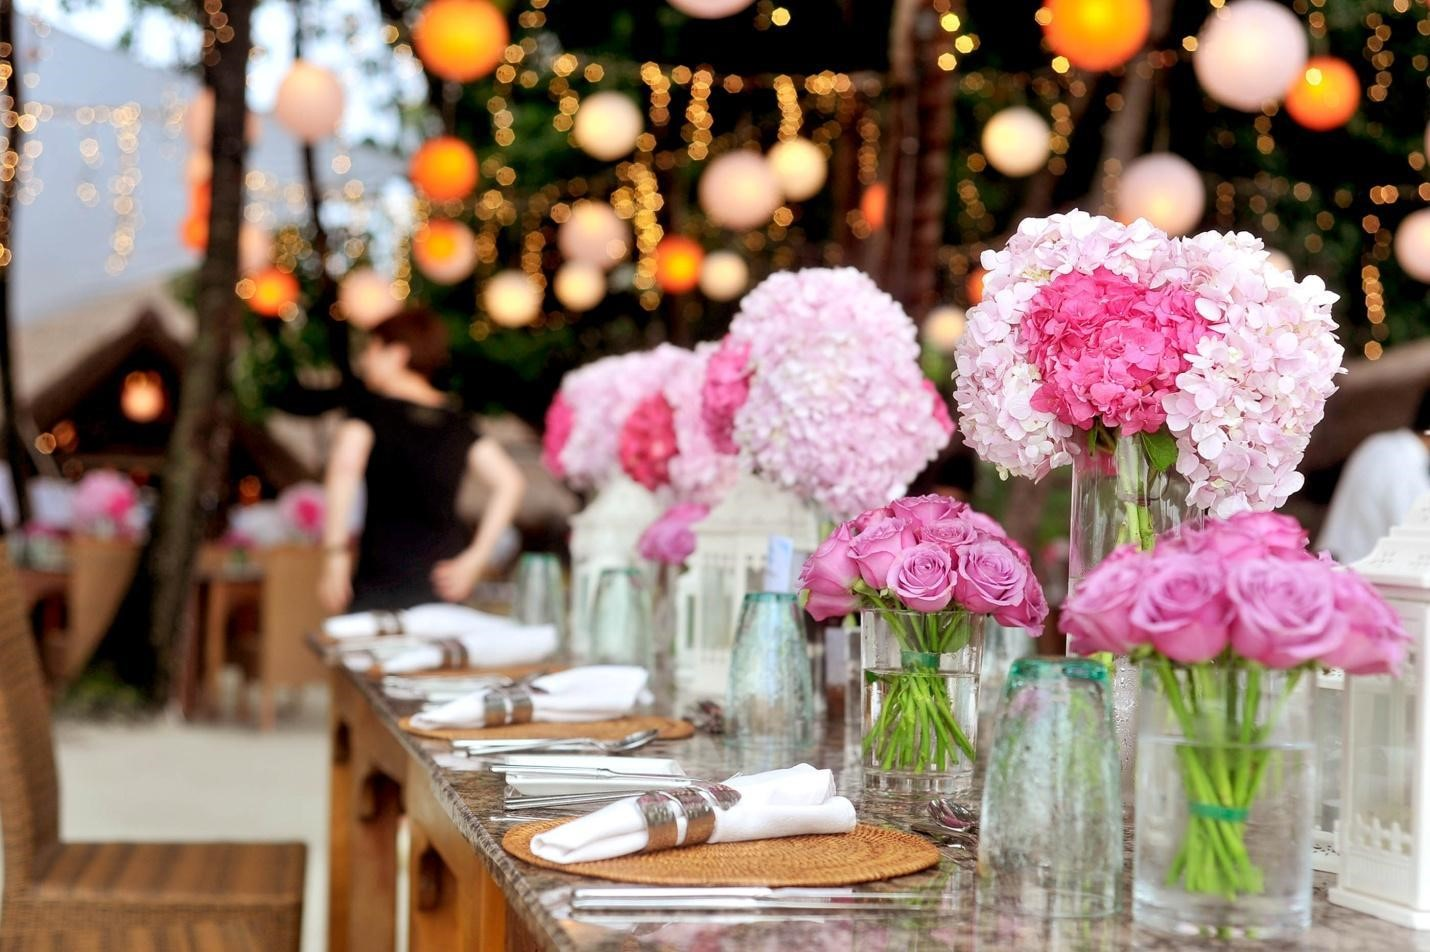 Plan your wedding with these 13 steps